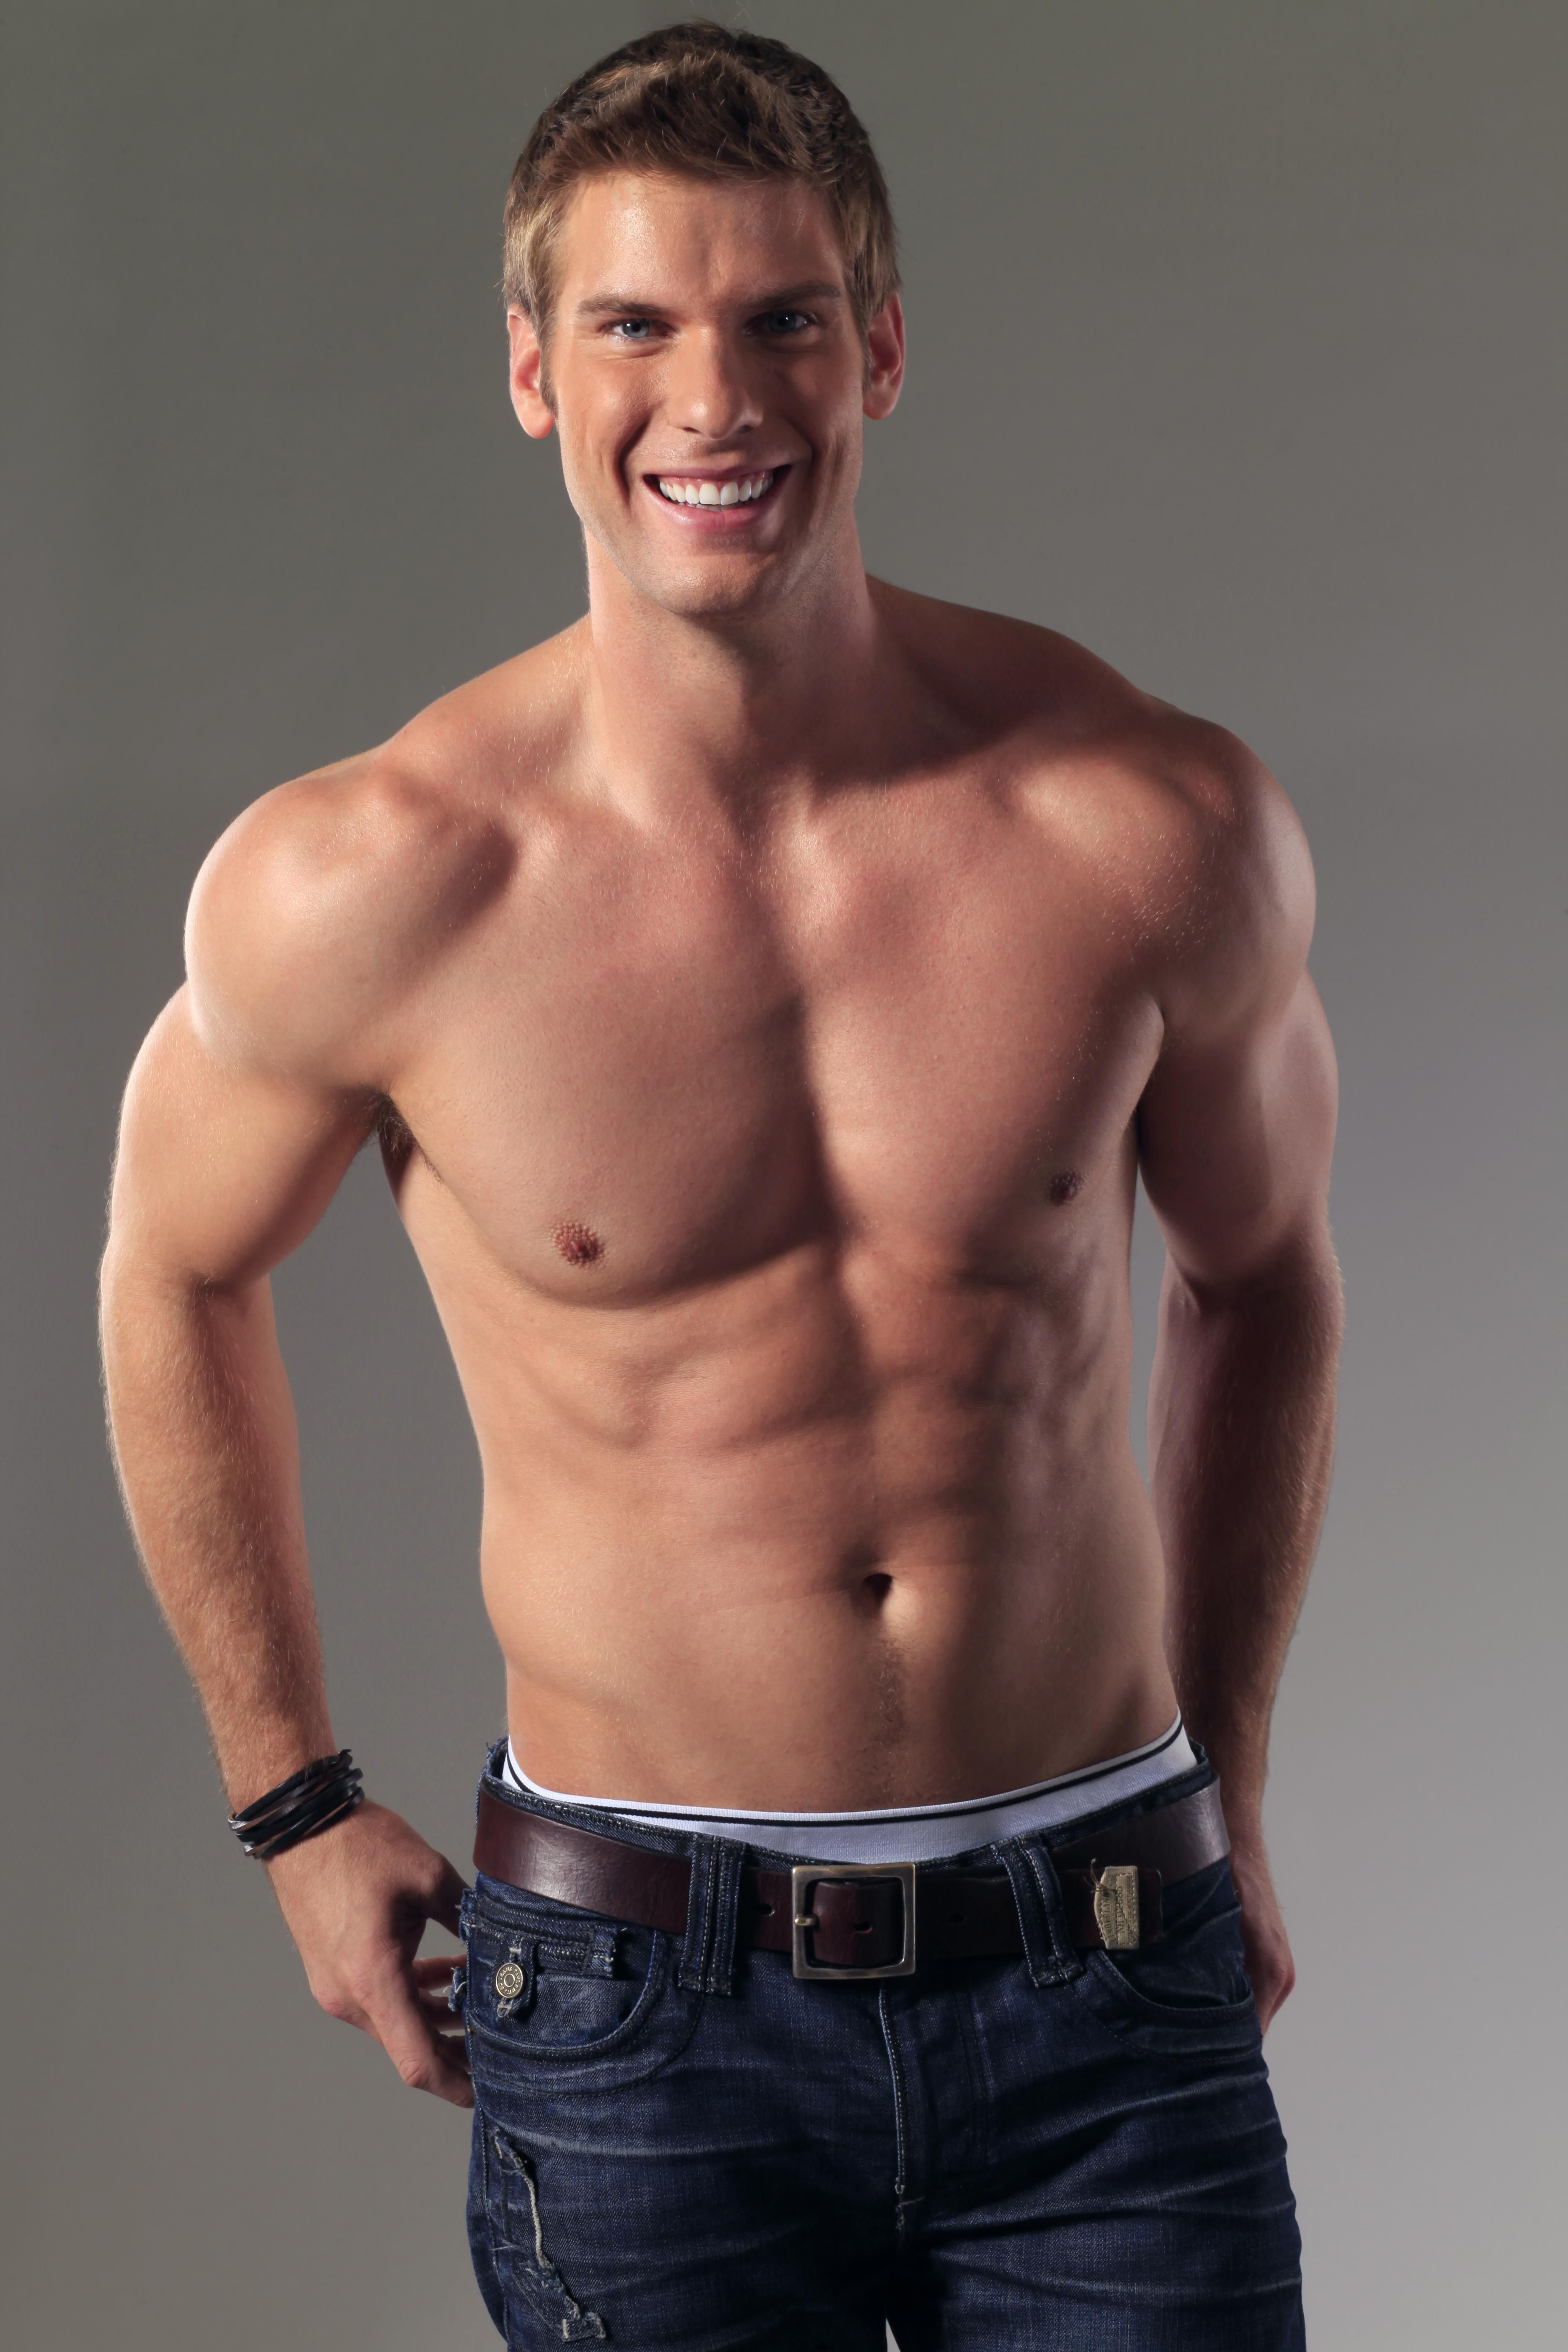 reese single guys Gay escort reviews about reese submited by the rentmen clients.